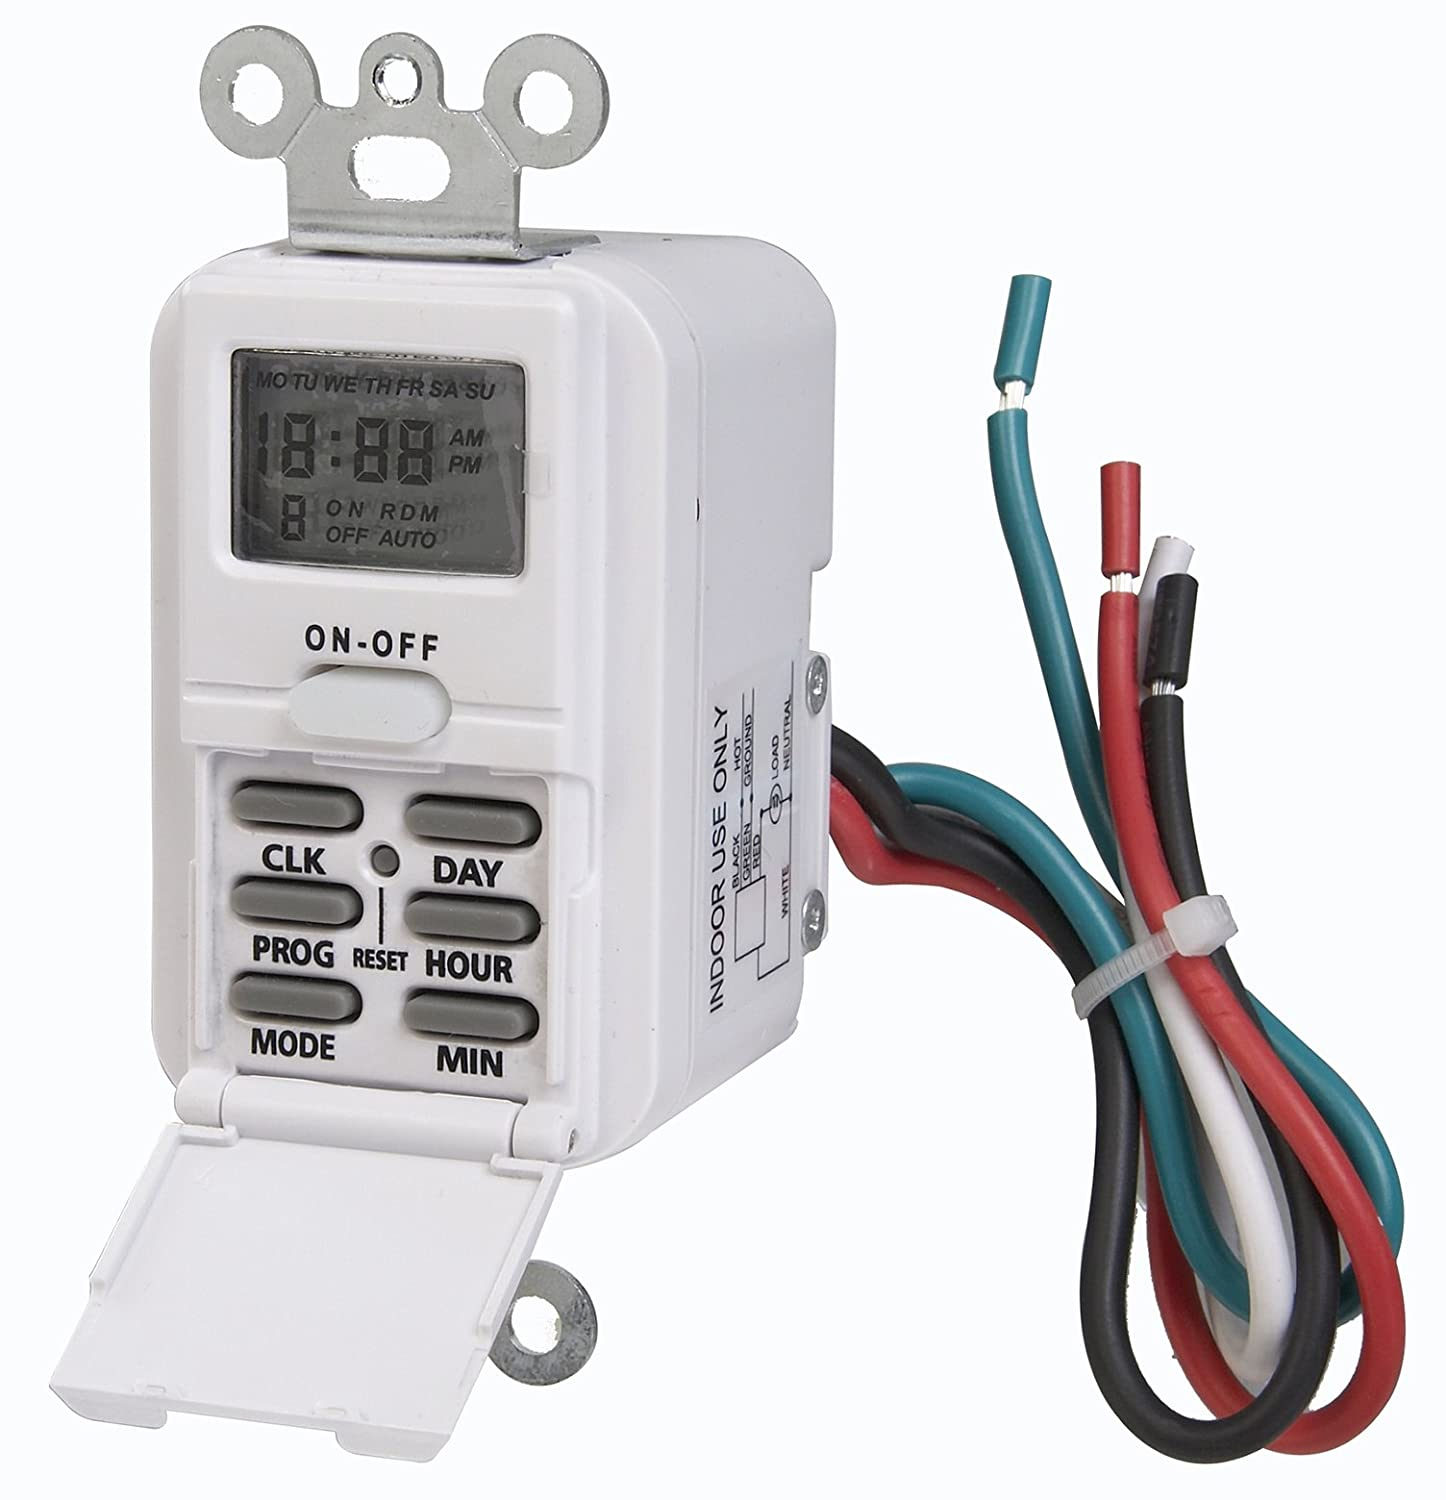 Exelent hard wired light timers motif wiring diagram ideas amertac tmdw10 westek hardwire indoor digital wall switch timer cheapraybanclubmaster Gallery